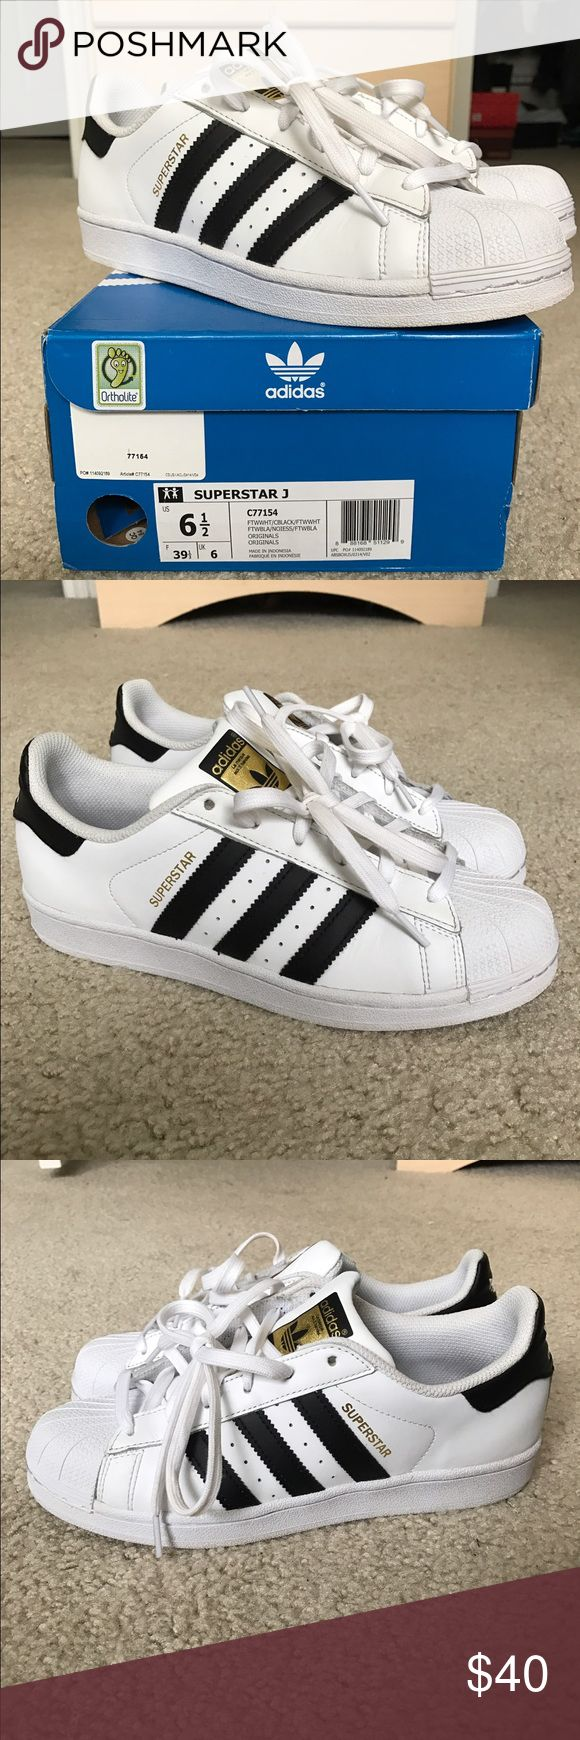 Adidas Originals Superstar Sneaker Shoes Adidas Originals Superstar shoes. Smooth leather upper, rubber shell toe and gum rubber outsole. Comfortable textile lining. Contrast heel tab. Worn but in great condition!! Size 6.5 Juniors fits size 8 women's. Adidas Shoes Sneakers